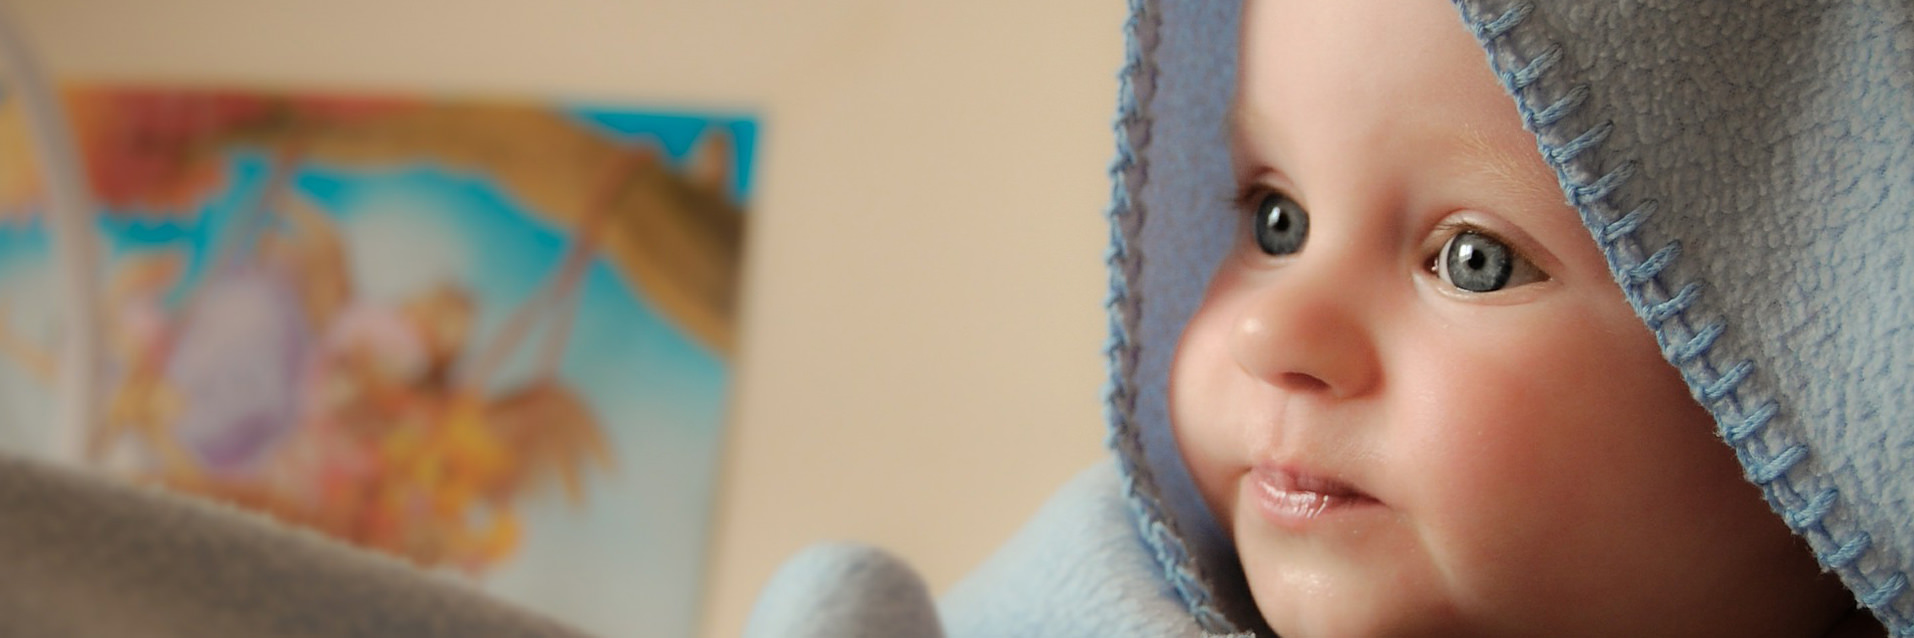 Blue eyed baby in hooded blue towel